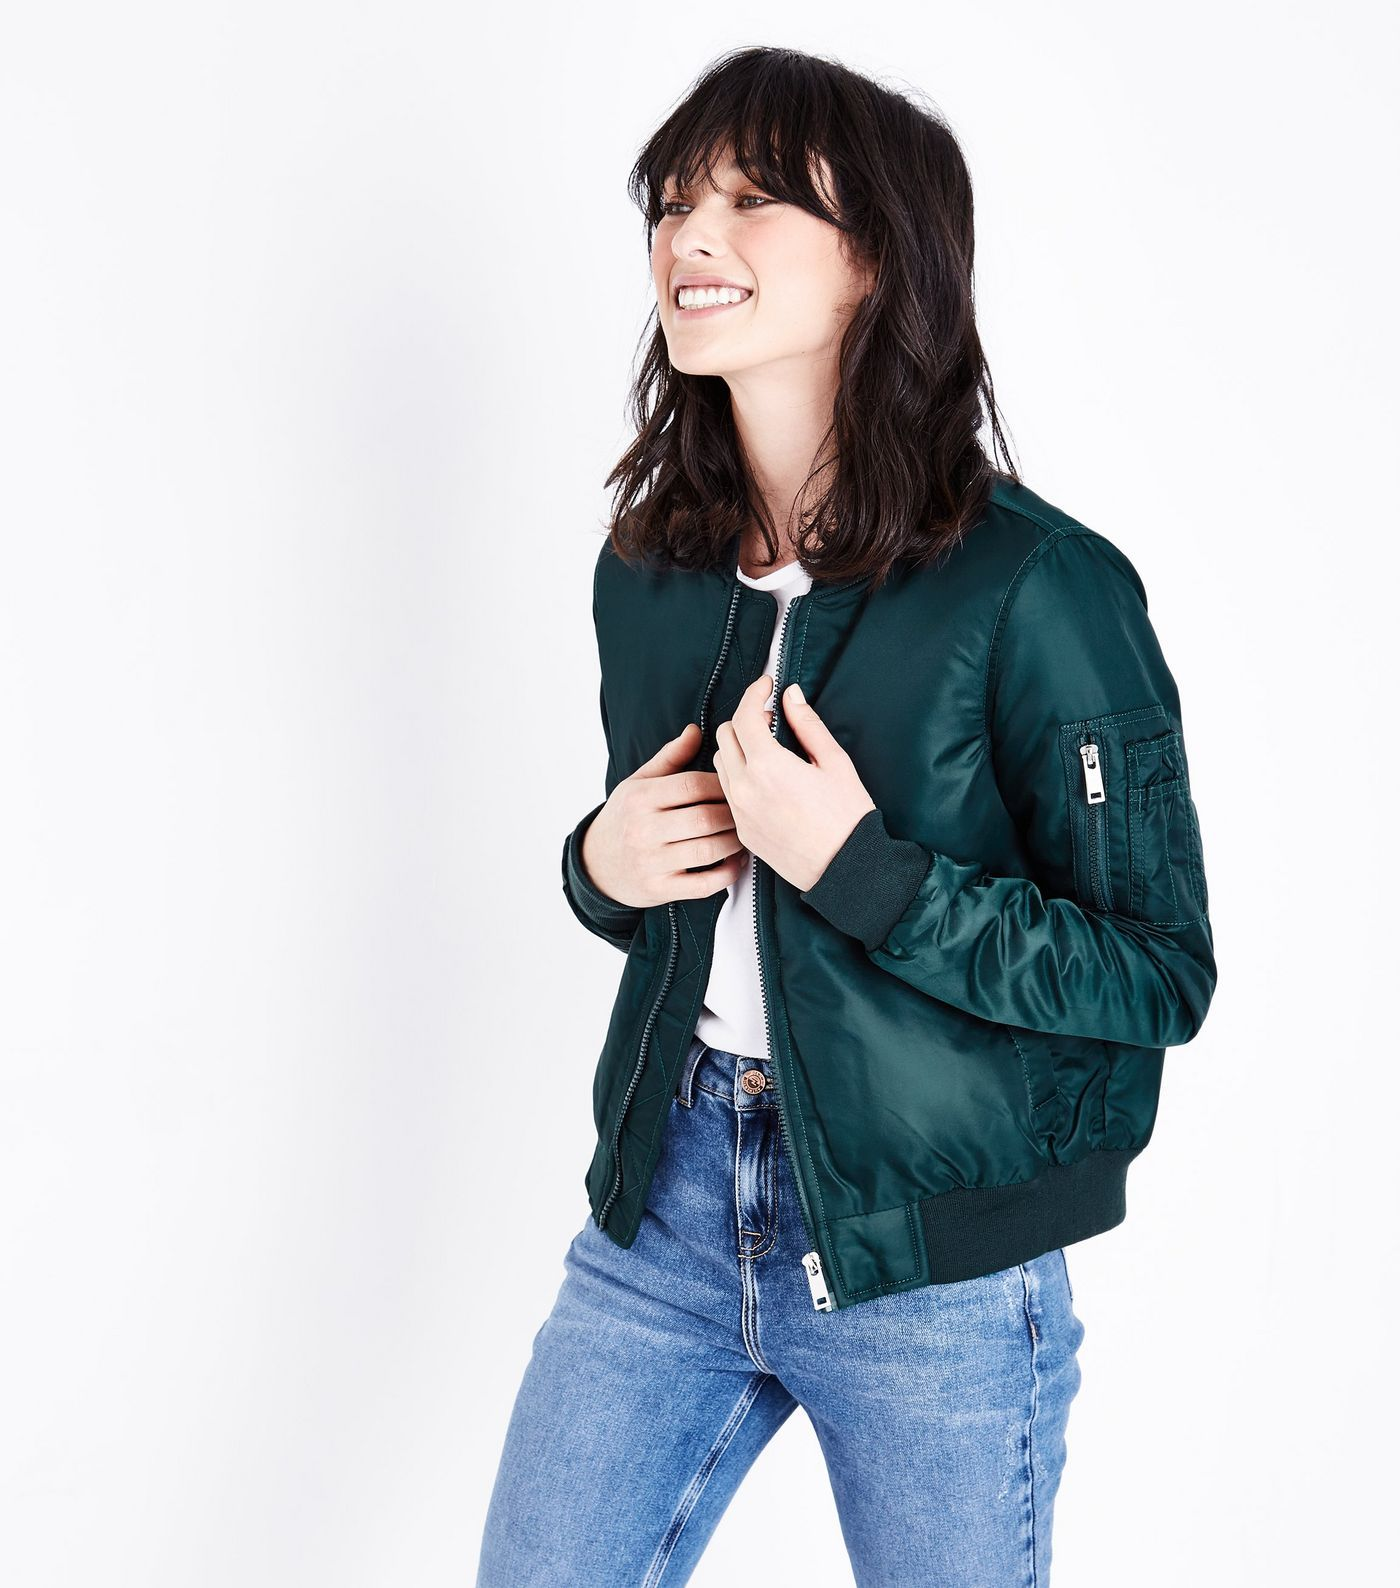 Teal Satin Bomber Jacket | Bomber jacket outfit, Bomber